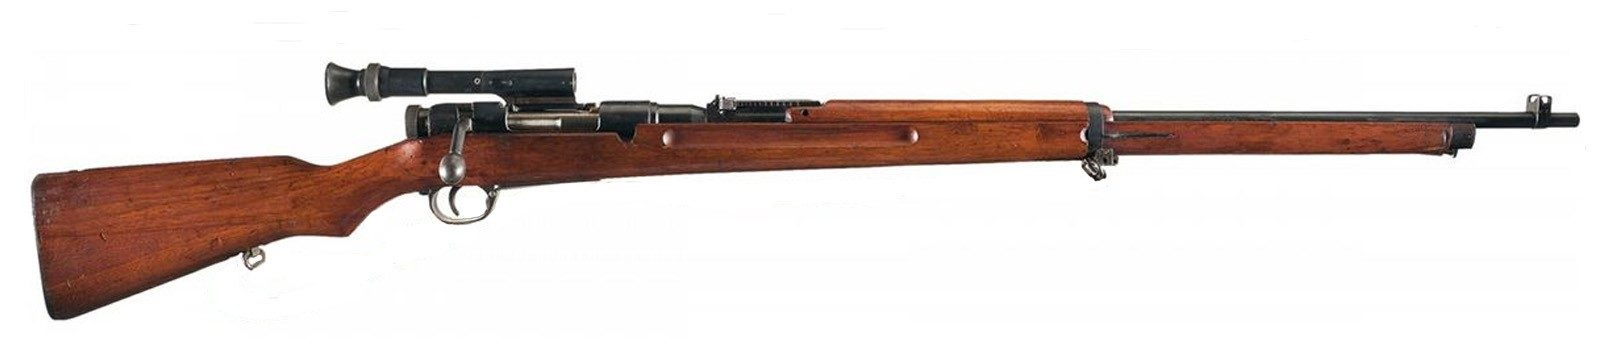 Снайперская винтовка Arisaka Type 97.